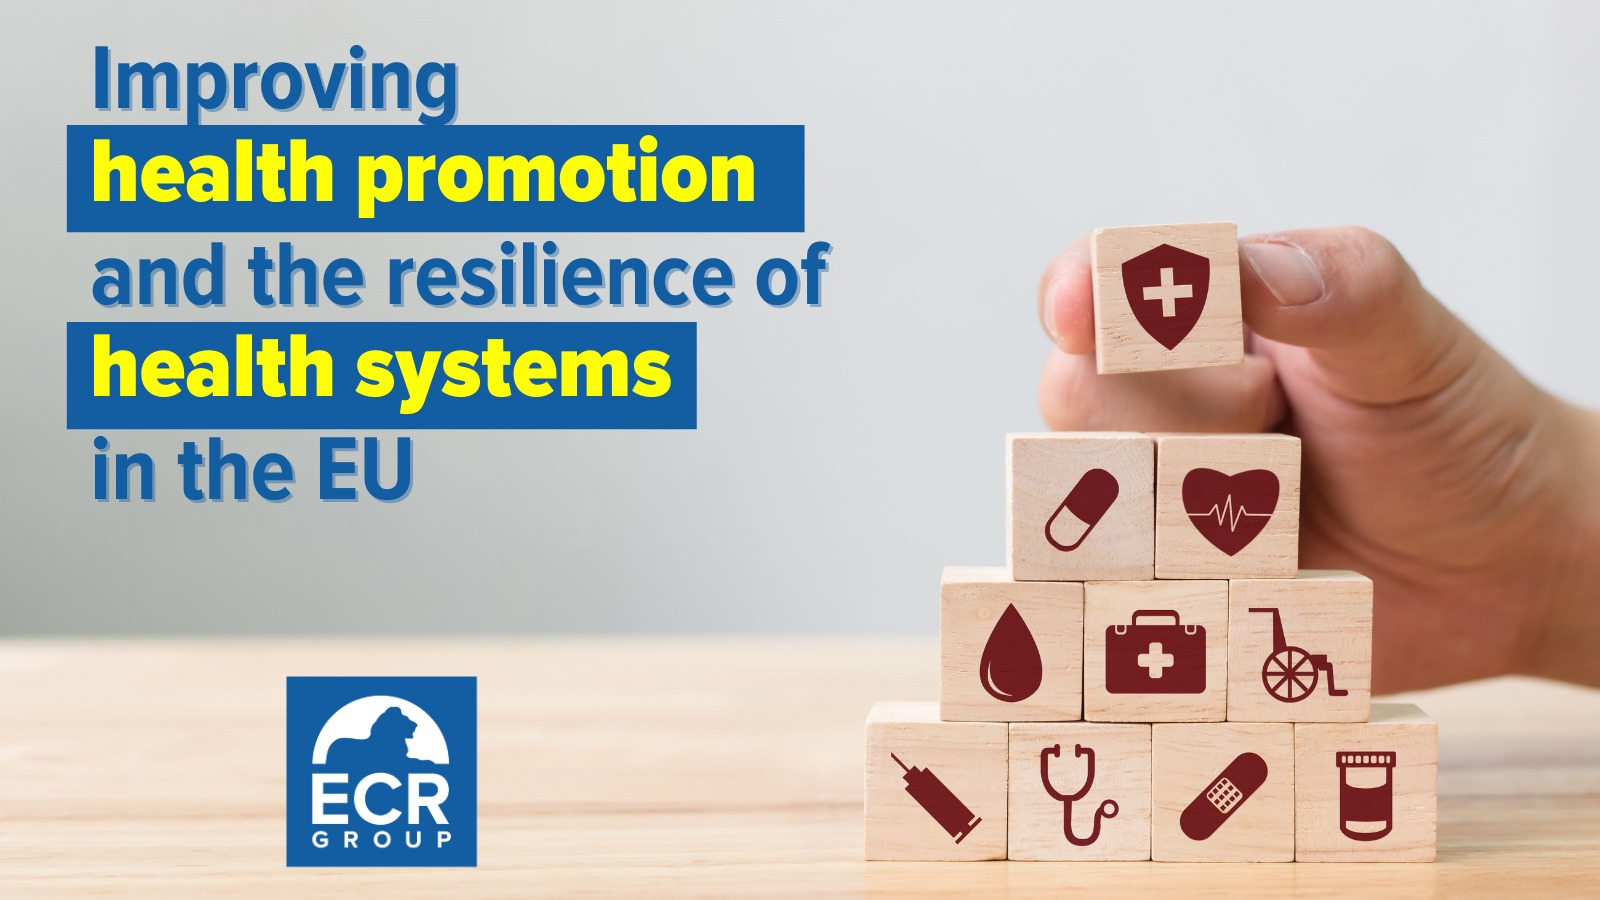 Improving health promotion and the resilience of health systems in the EU